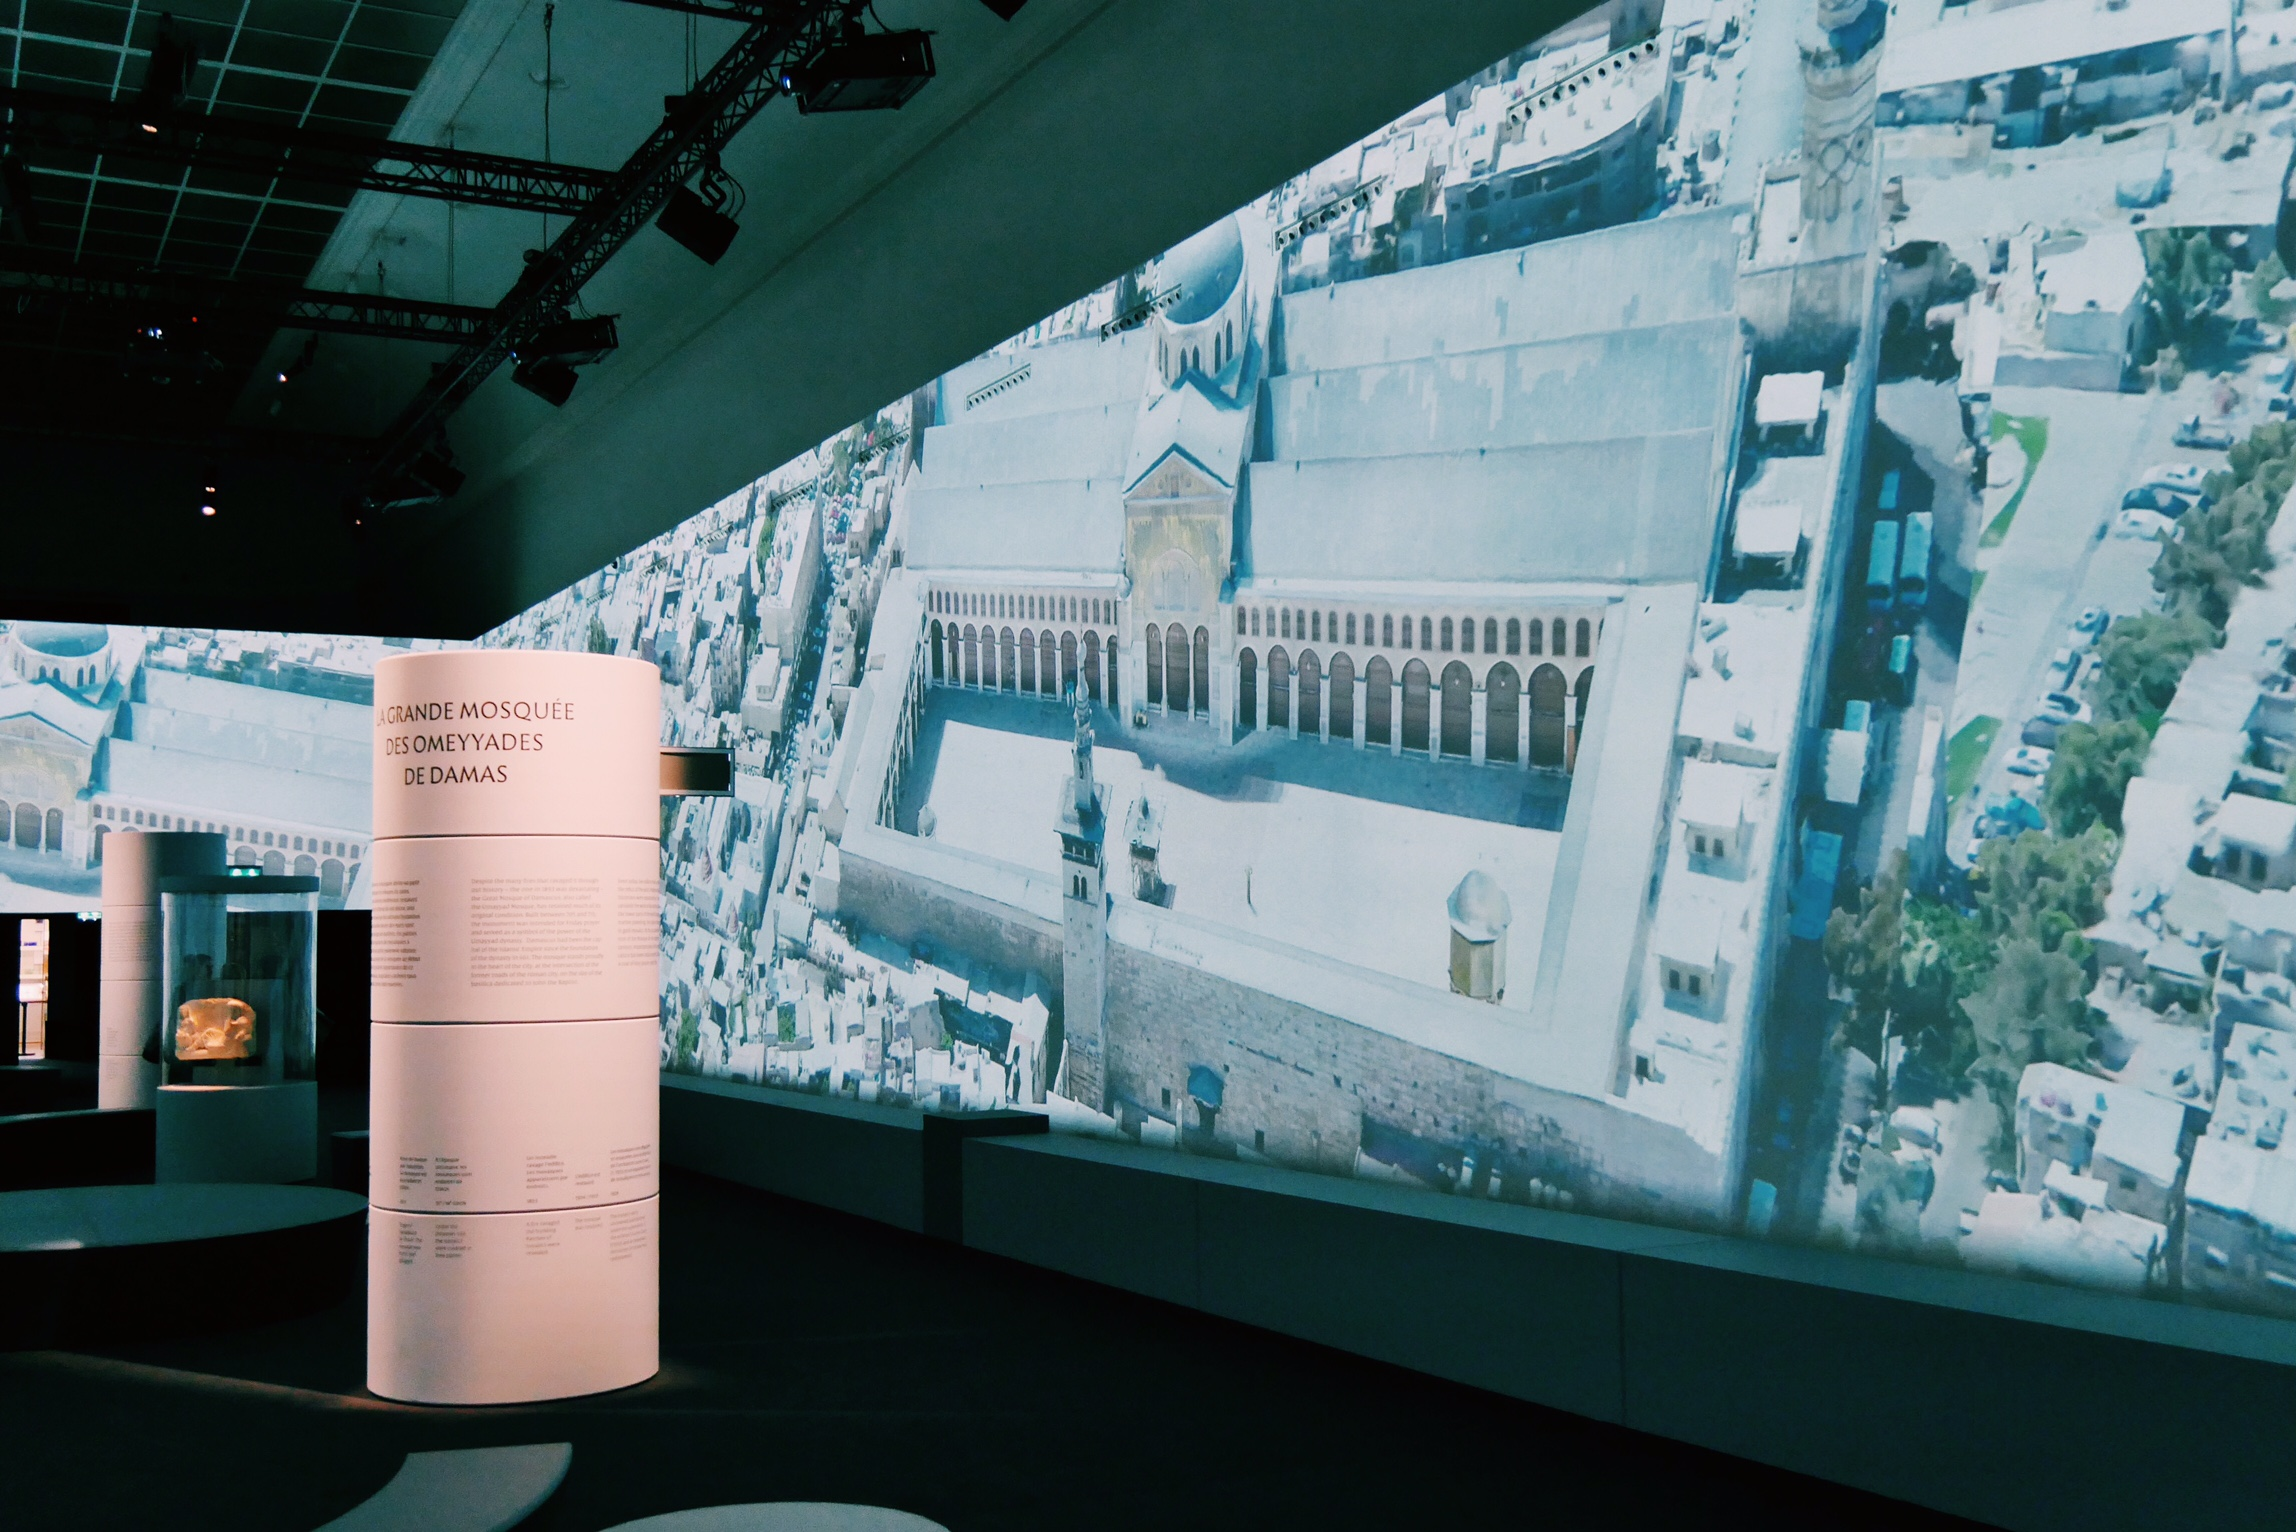 Exposition-Sites-éternels-Grand-Palais-Paris-projection-360-degrés-Grand-mosquée-des-Omeyyades-de-Damas-photo-usofparis-blog